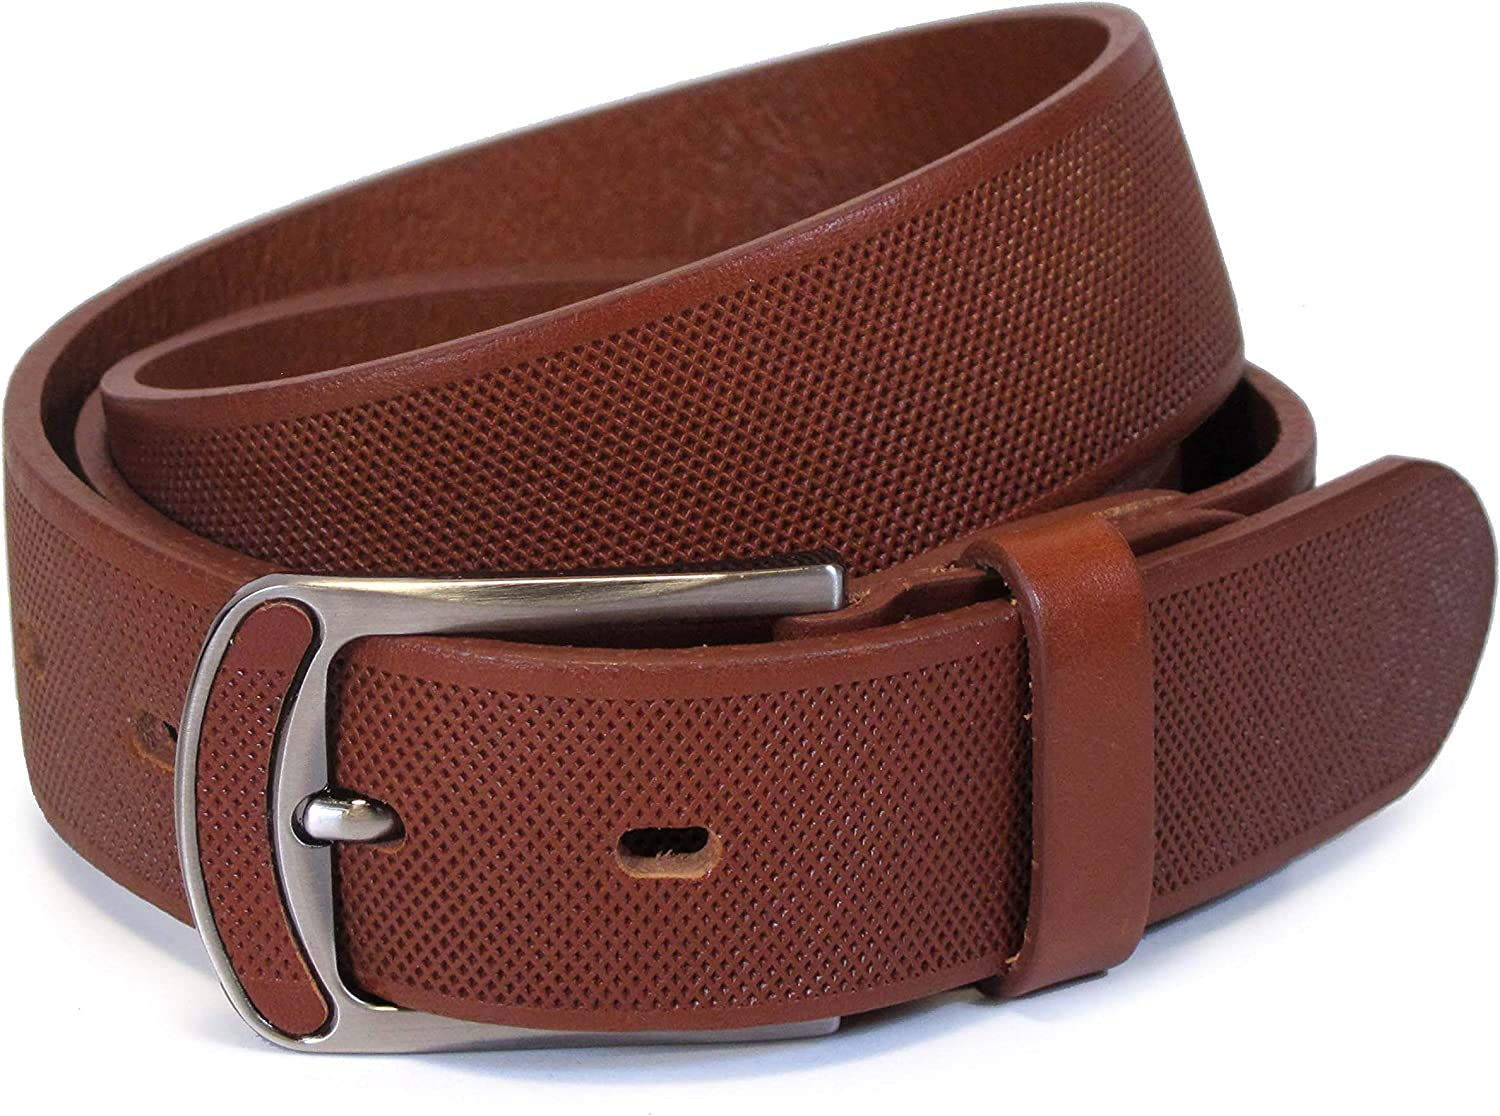 UM3 Mens Real Genuine Leather Tan Brown Belt 1.25 Wide S-L Thick Casual Jeans